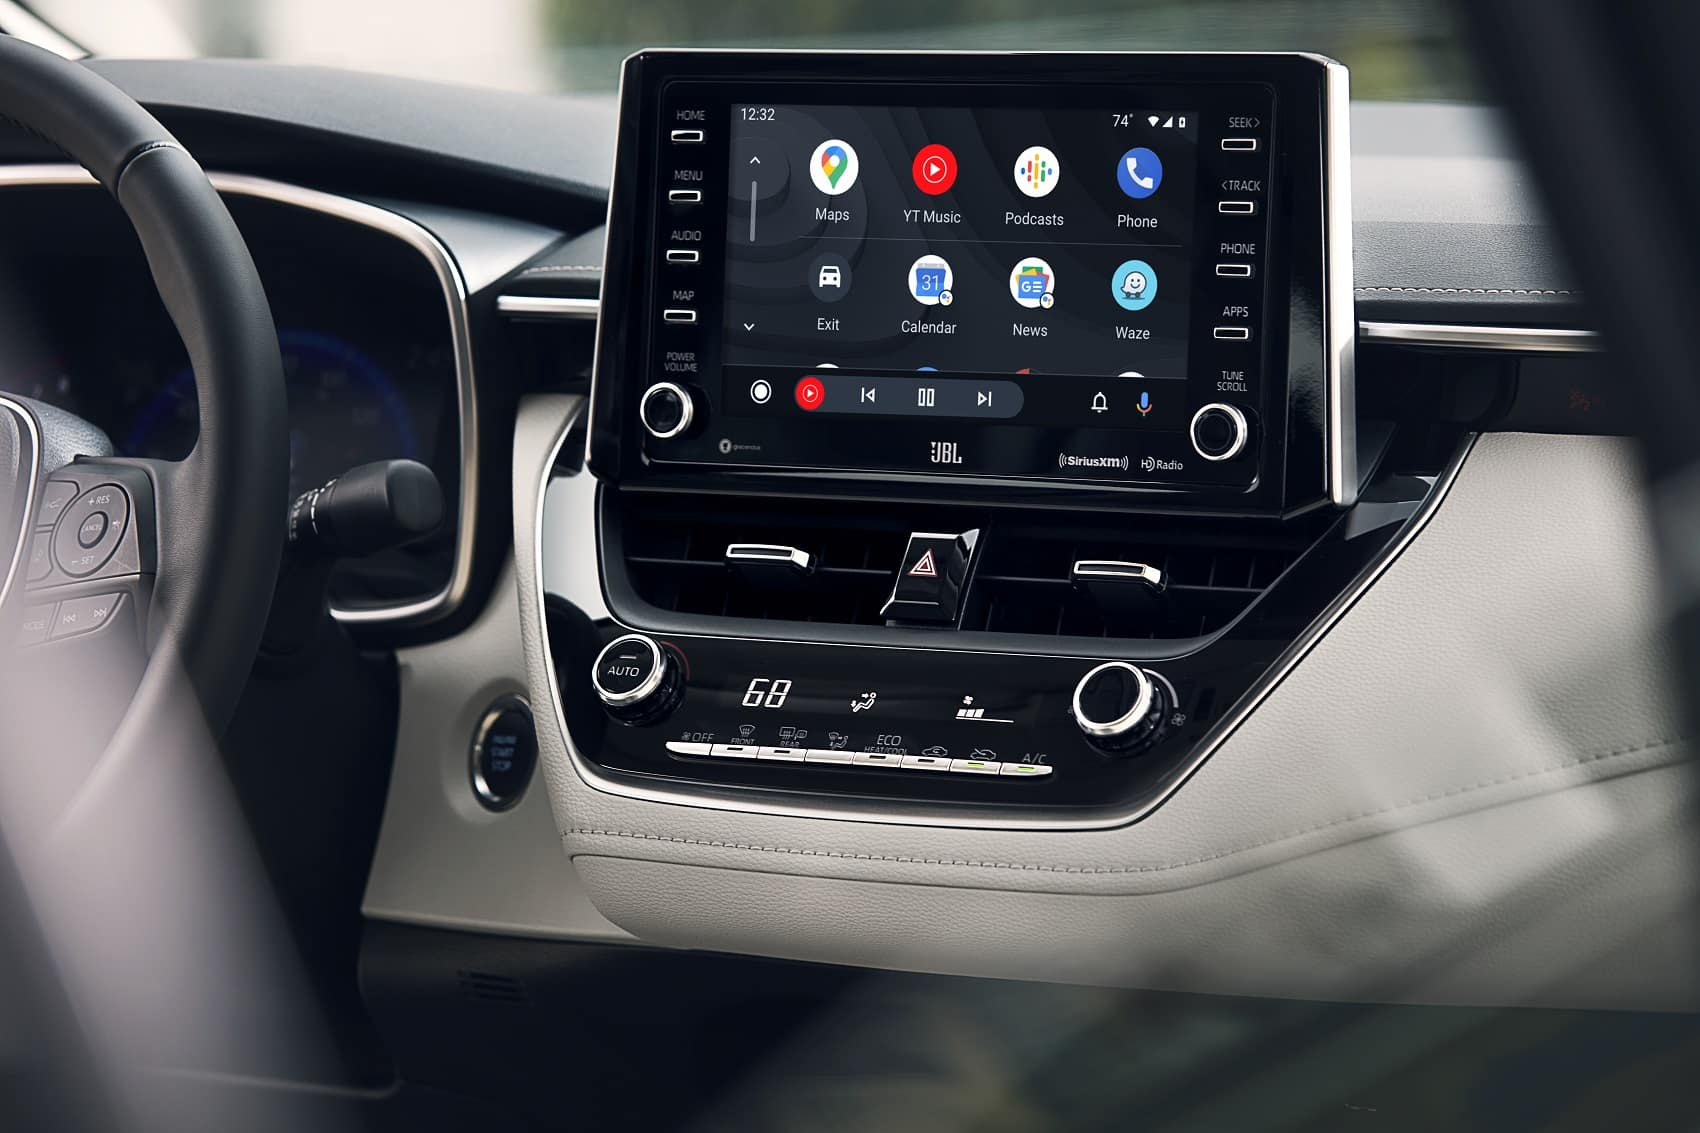 2021 Toyota Corolla Interior with Android Auto™ Technology